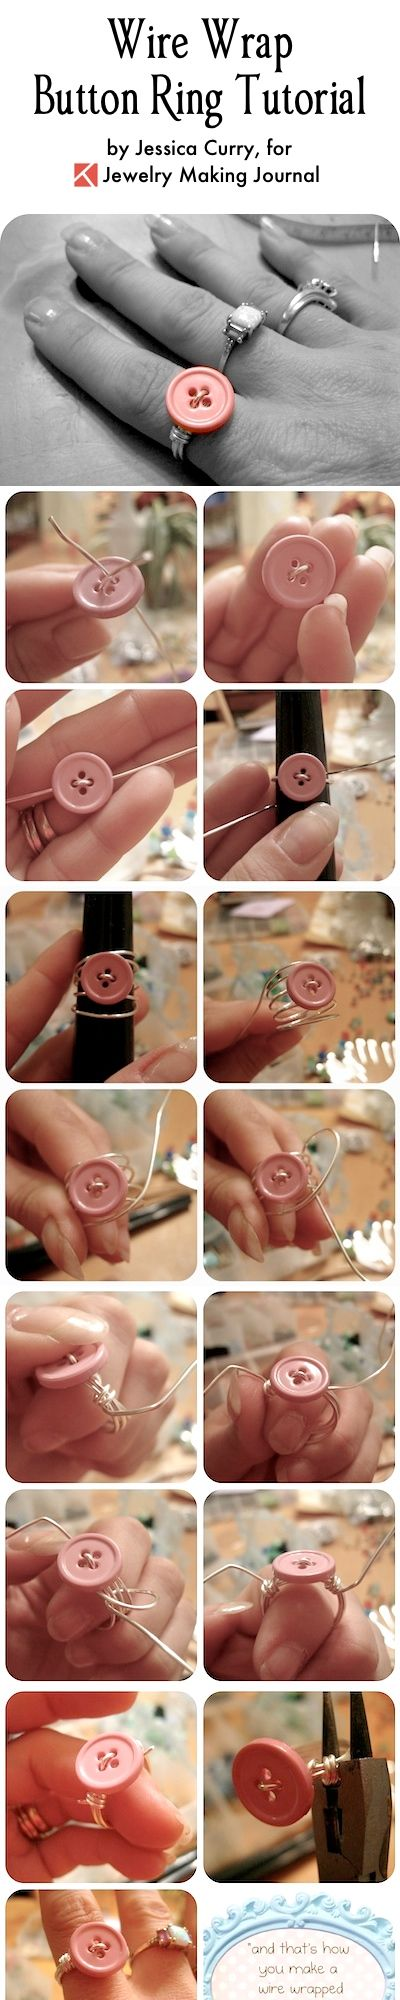 Wire Wrap Button Ring Tutorial   Wire Button Ring Tutorial   Button Jewelry Tutorial   Make Button Jewelry